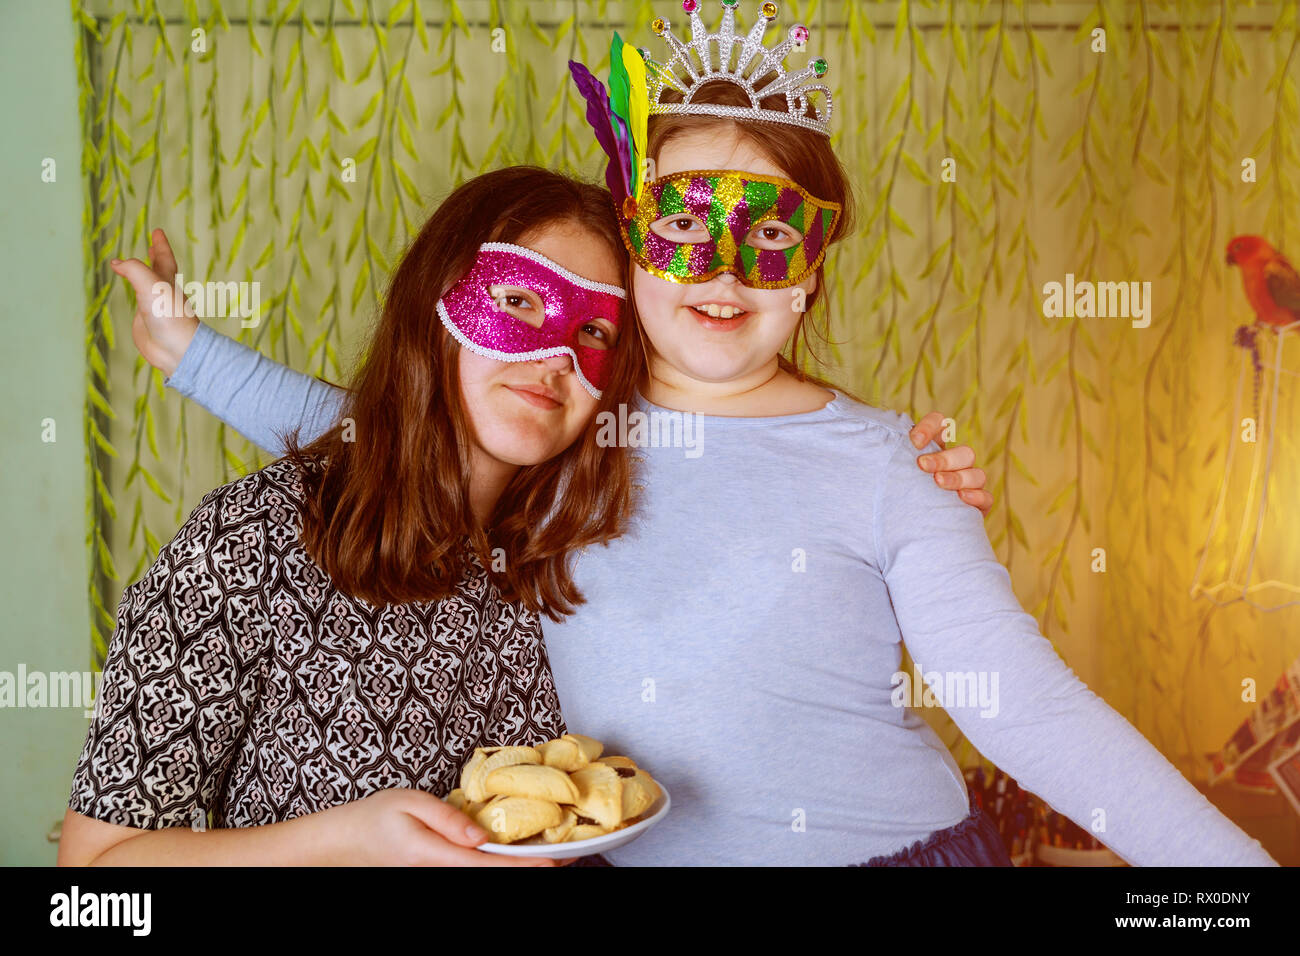 Jewish holiday Purim Happiness of fun and happy expressions In Festive Carnival Masks with hamantaschen cookies or hamans ears - Stock Image